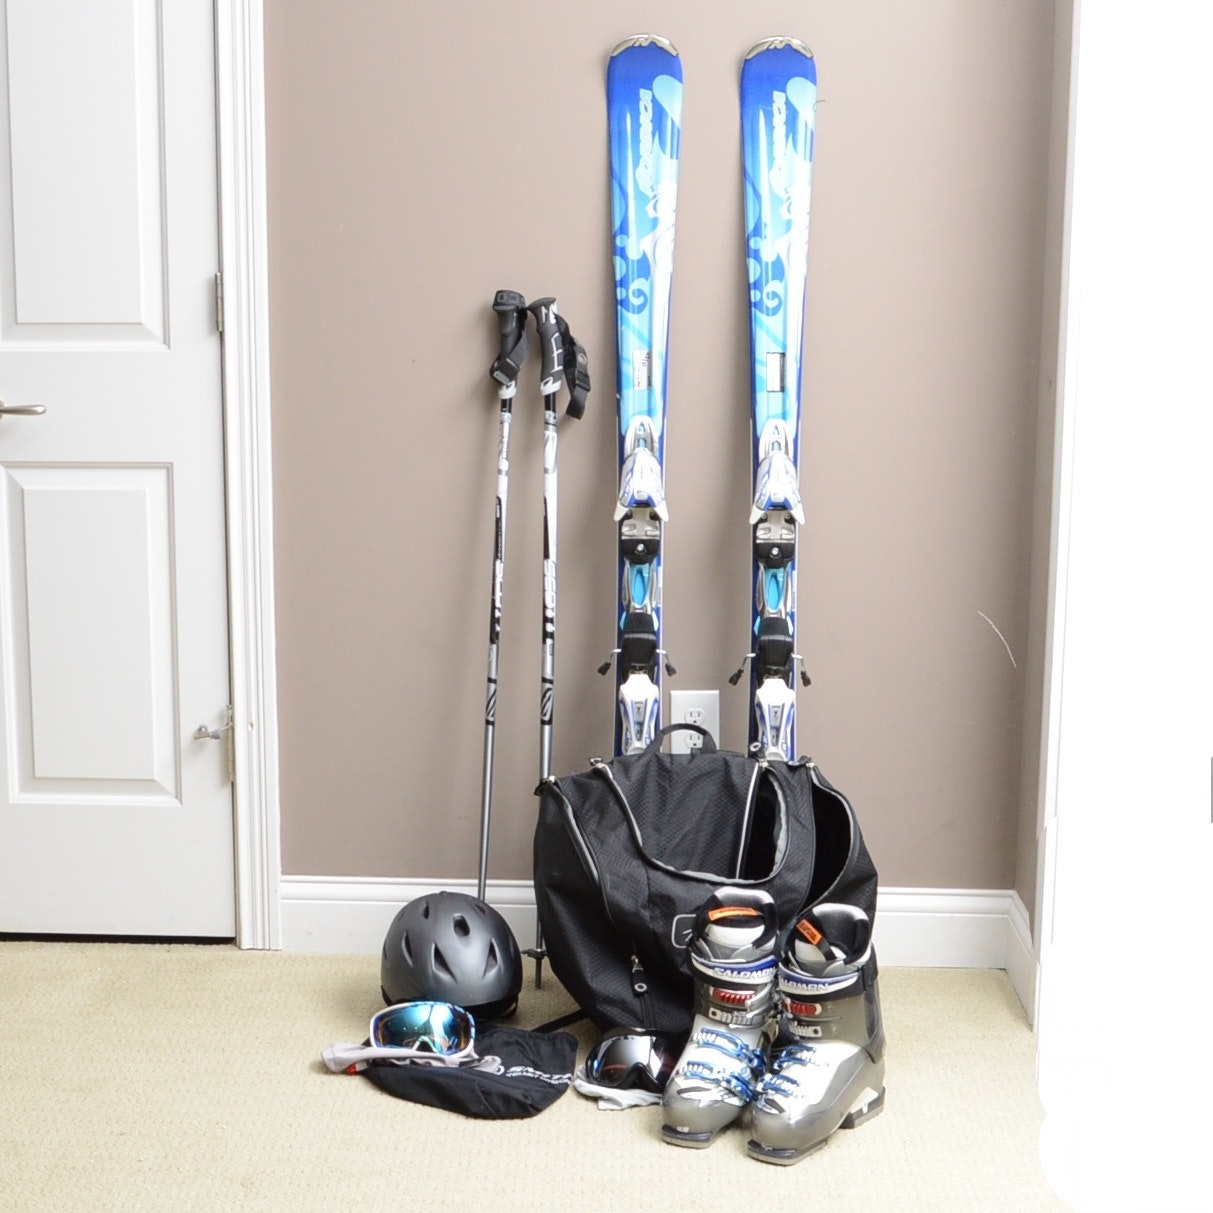 Nordica Skis and Equipment